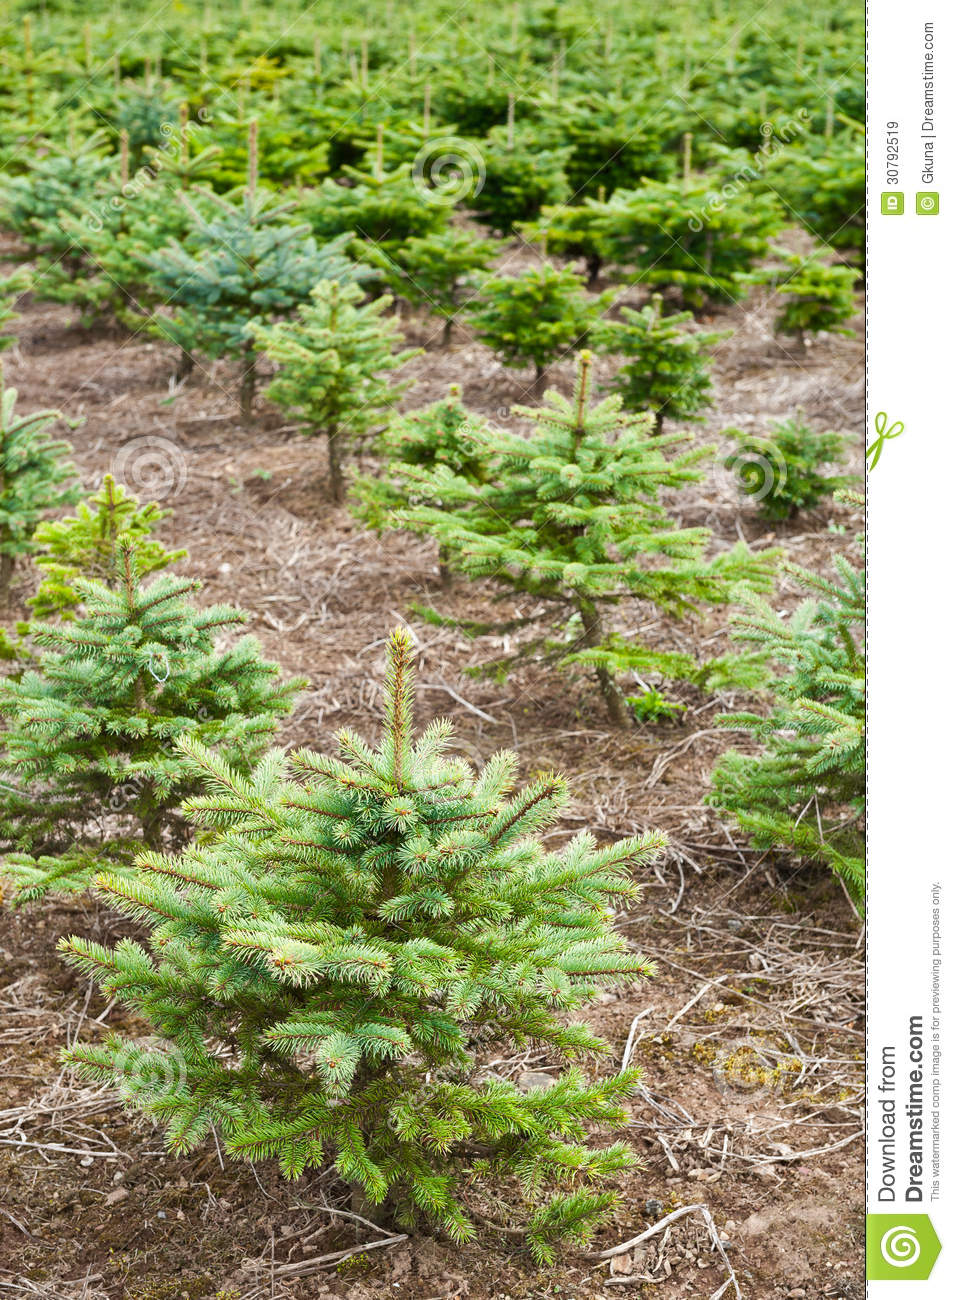 how to grow spruce trees minecraft